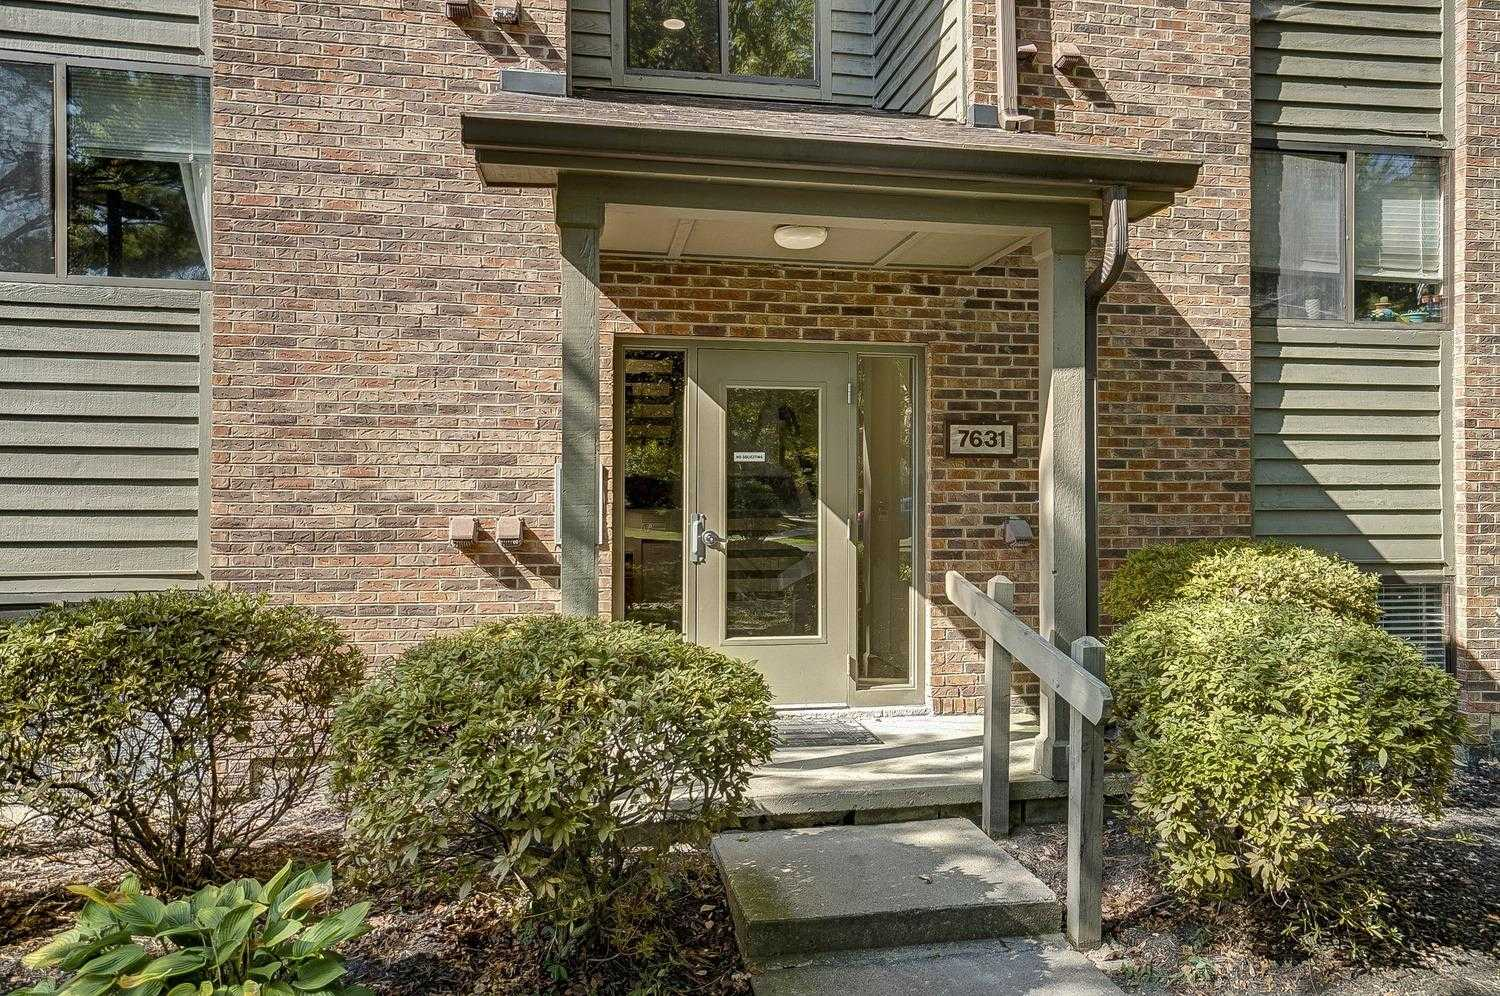 7631 Montgomery Road Unit 8 Sycamore Twp,OH 45236 1679226